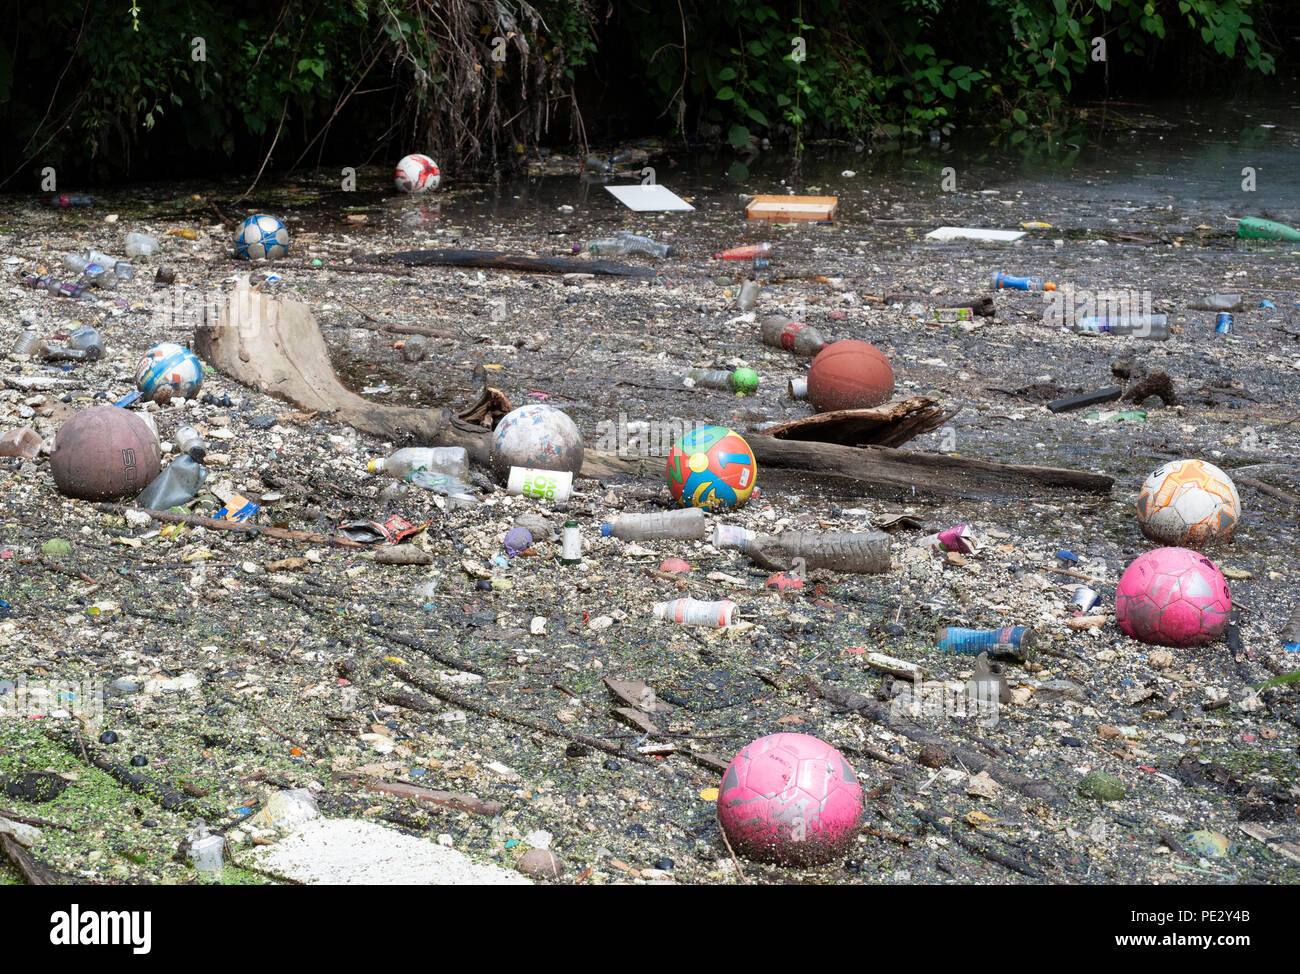 River pollution collected near a pollution grate,River Brent, near Brent Reservoir, also known as Welsh Harp Reservoir, Brent, London, United Kingdom - Stock Image